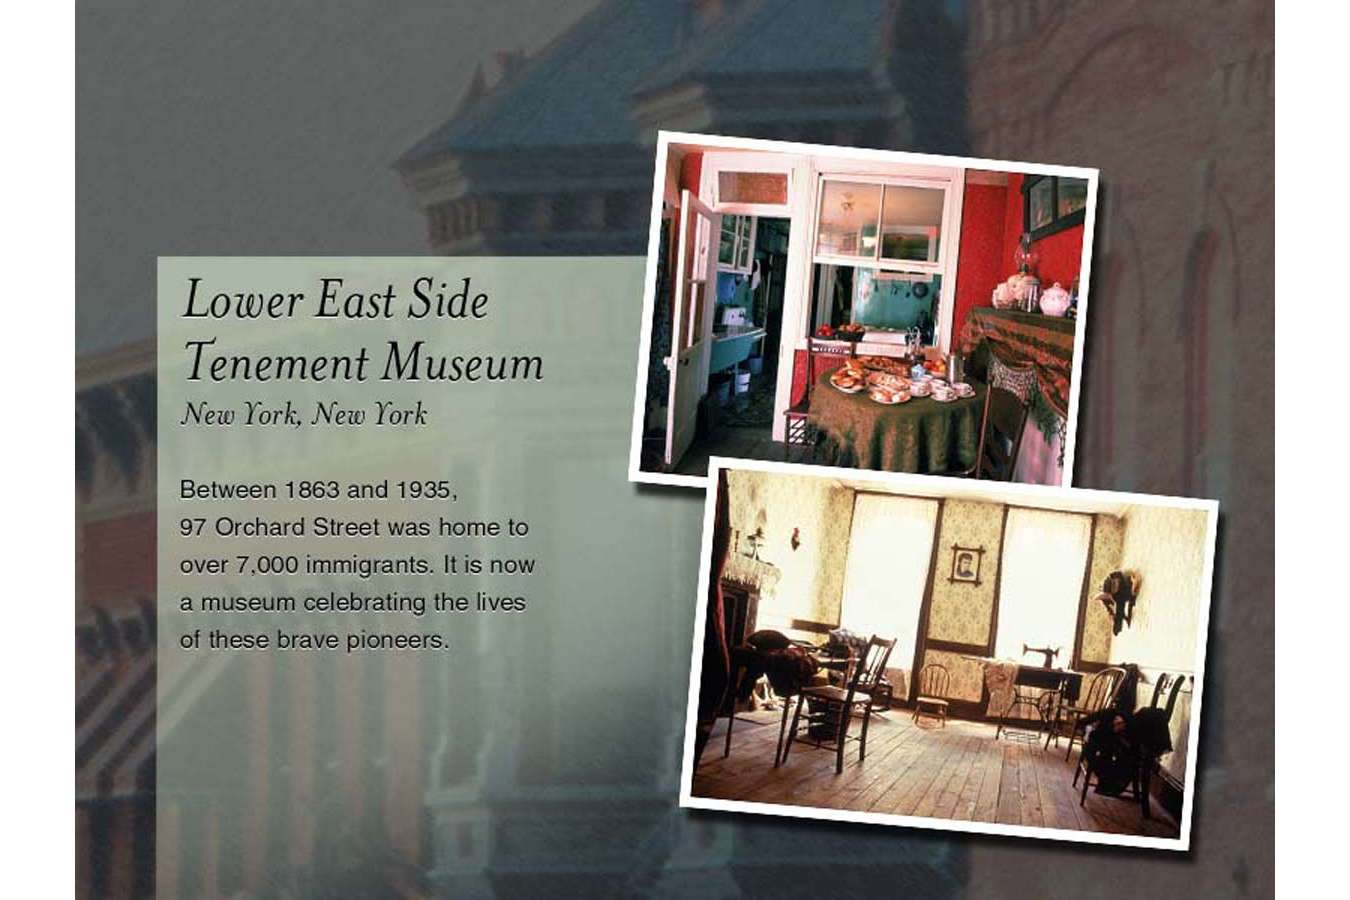 NTHP nytm : For the New York Tenement Museum, custom distressed wood frame created